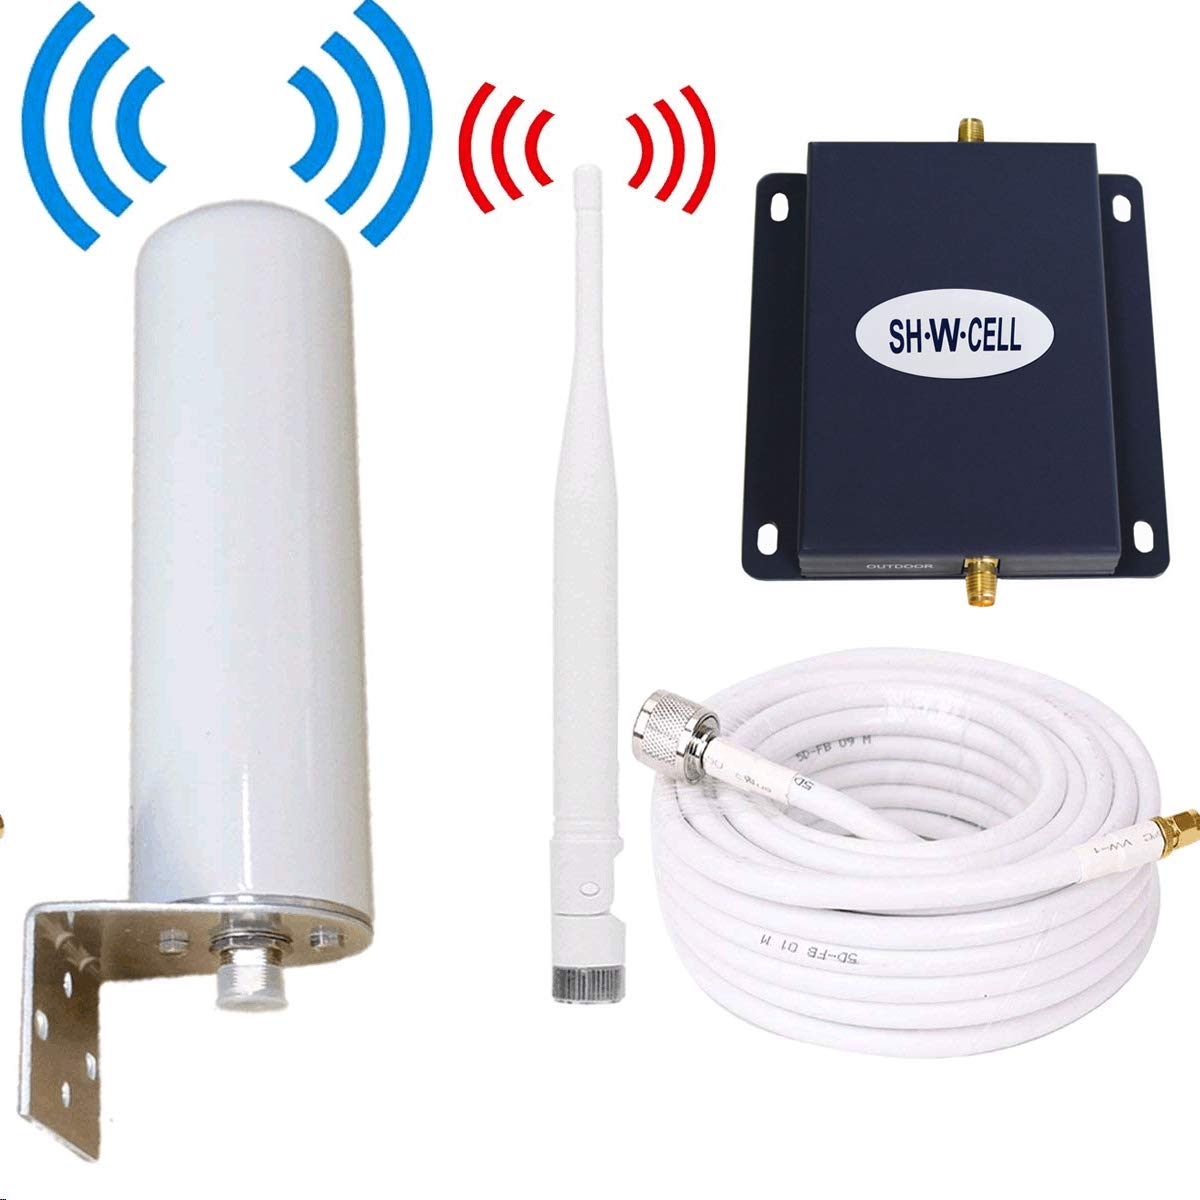 AT&T Cell Phone Signal Booster 4G LTE 700Mhz FDD Band12/17 T-Mobile Cell Signal Booster ATT Cell Phone Booster Amplifier Repeater Mobile Signal Booster SHWCELL with Whip/Omni Antennas Kit Home Use by SH·W·CELL